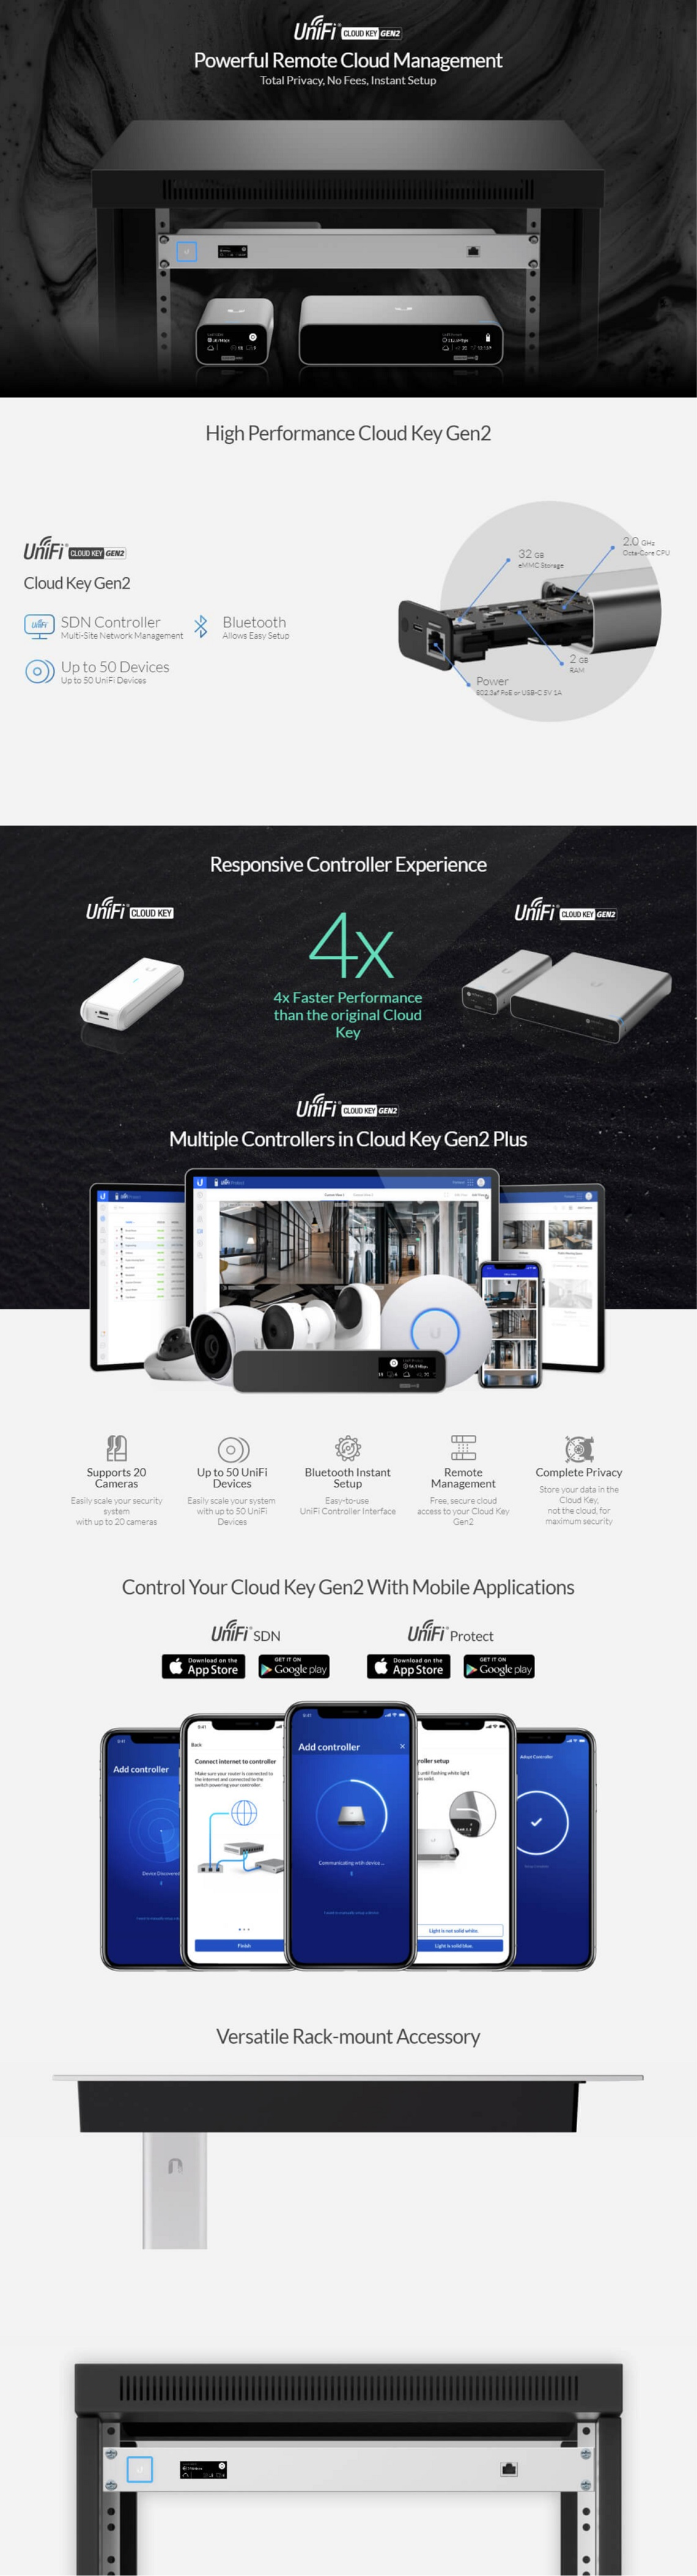 Details about Ubiquiti UCK-G2 UniFi Cloud Key Gen2 With Battery Backup 4x  Faster Than Previ